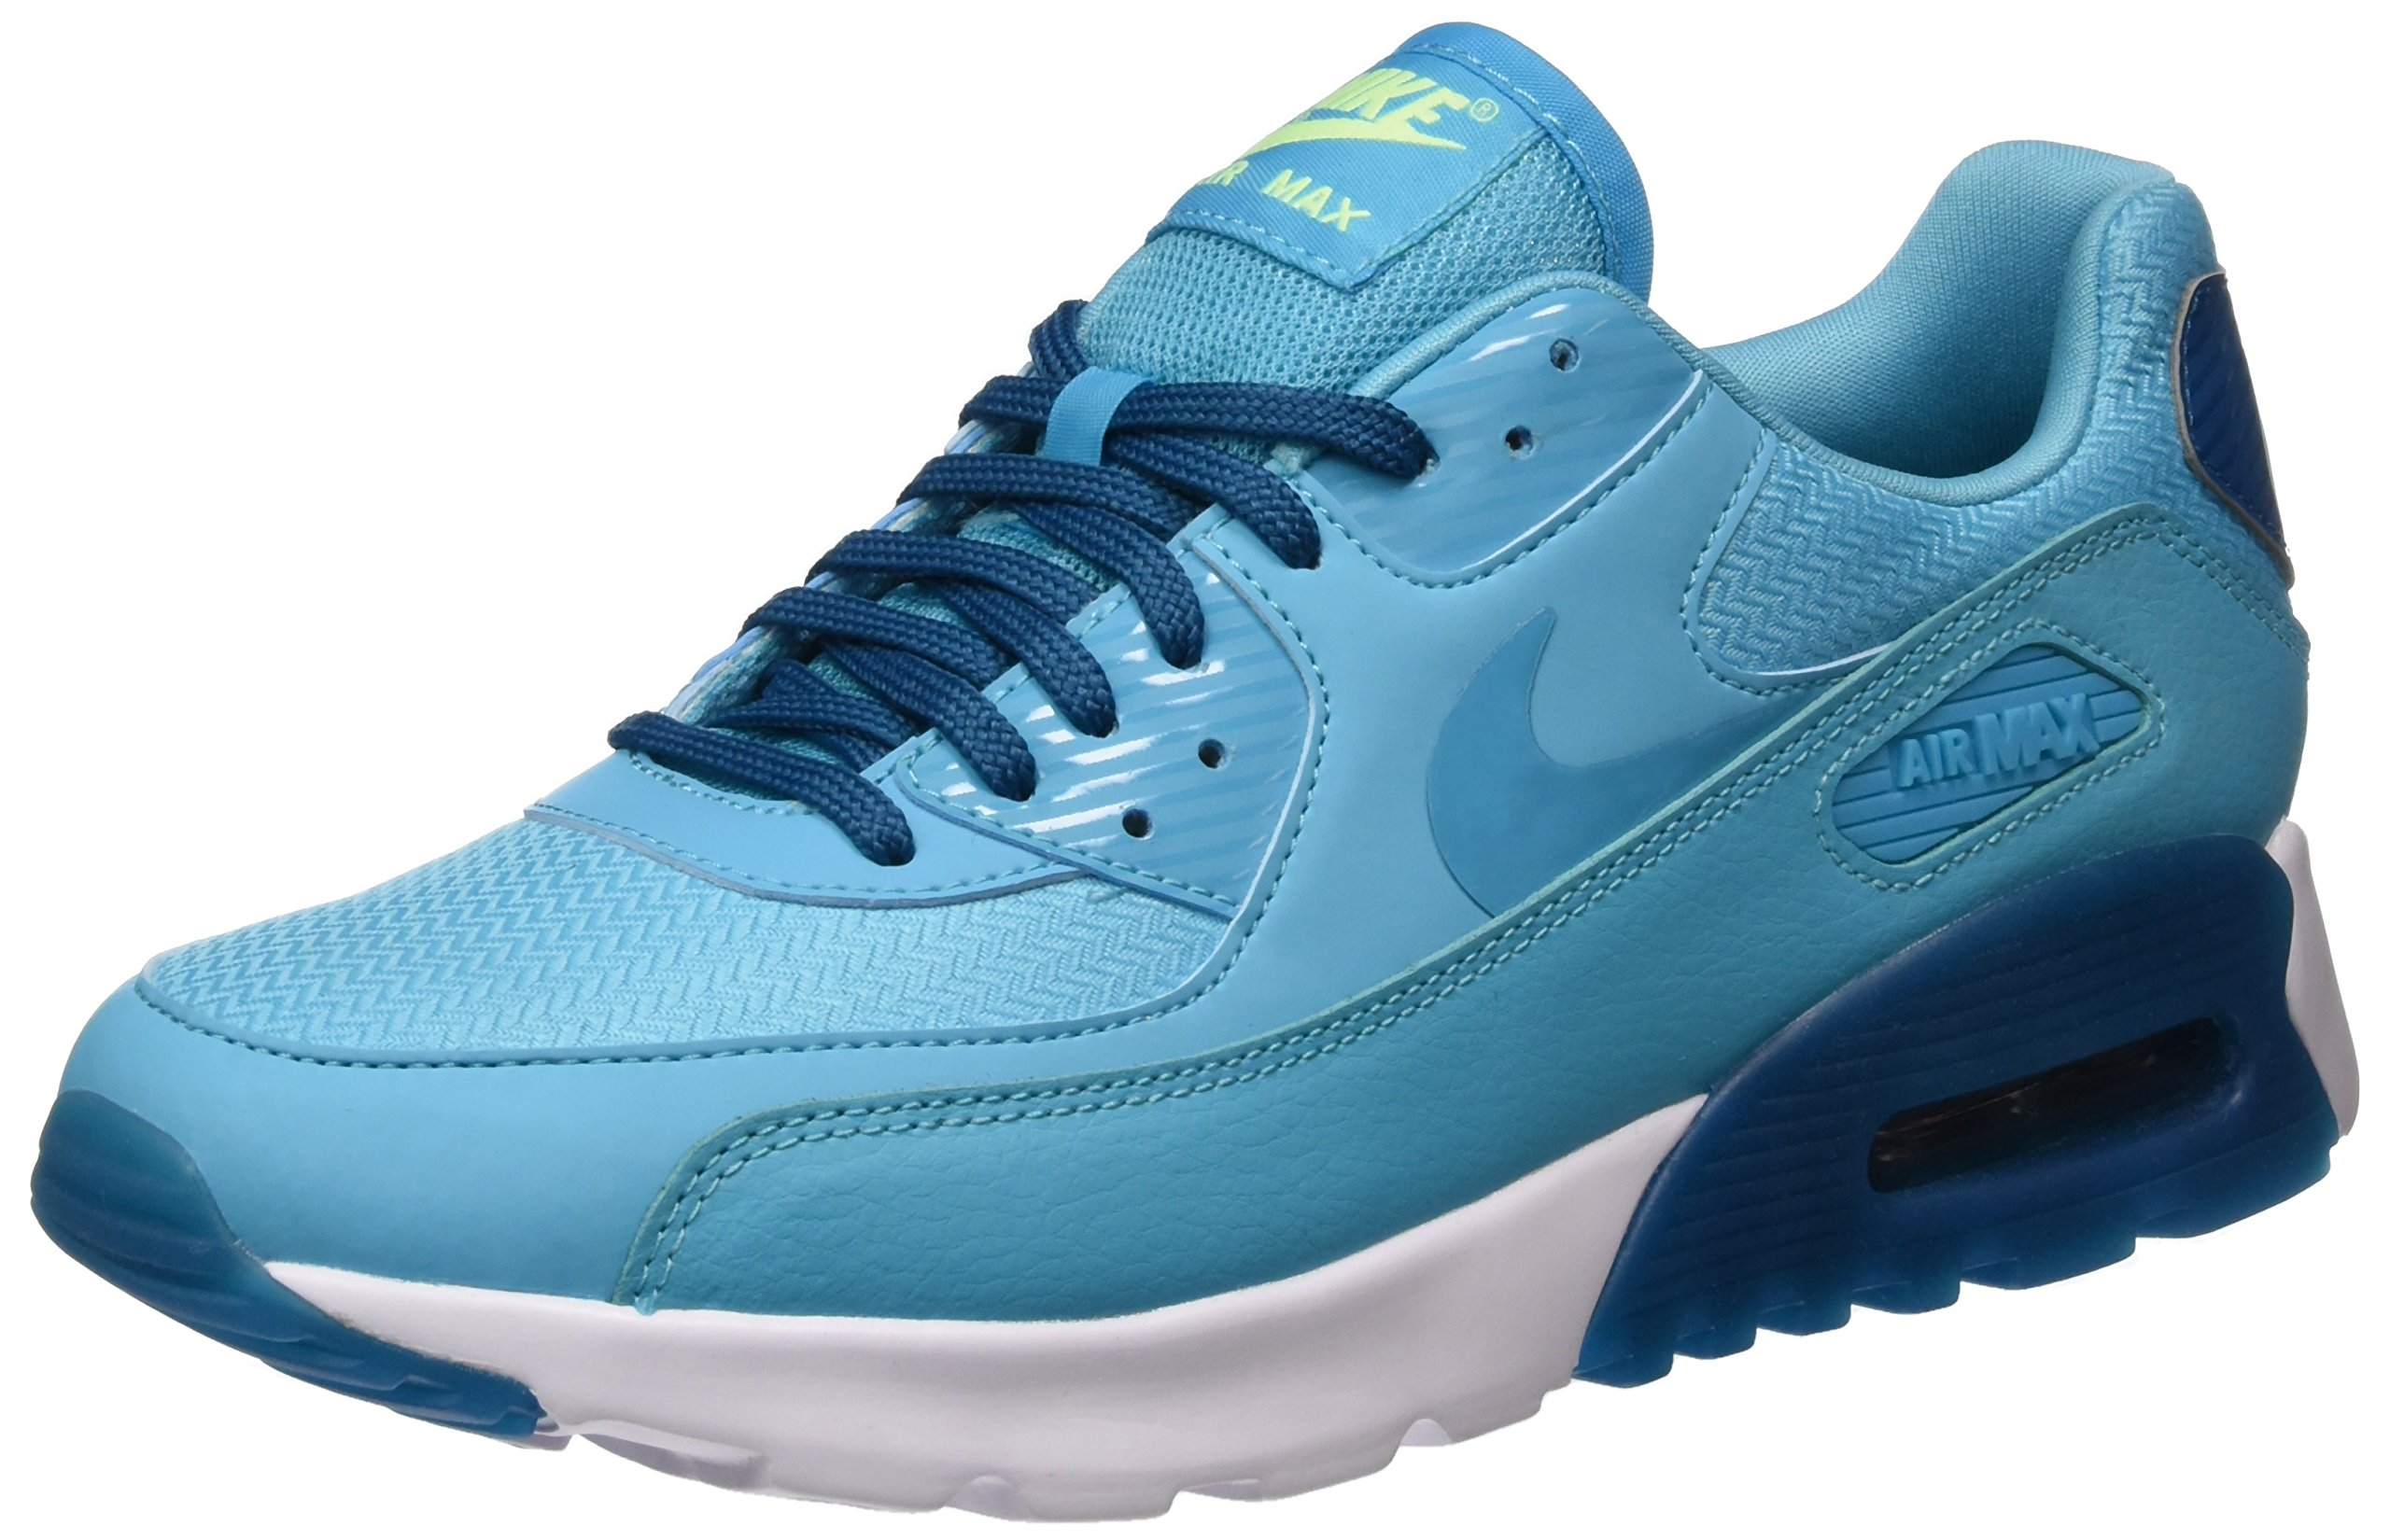 quality design 1bf20 25afa Nike Women's Air Max 90 Ultra Essential Gamma Blue/White 724981-403 (Size:  6.5)